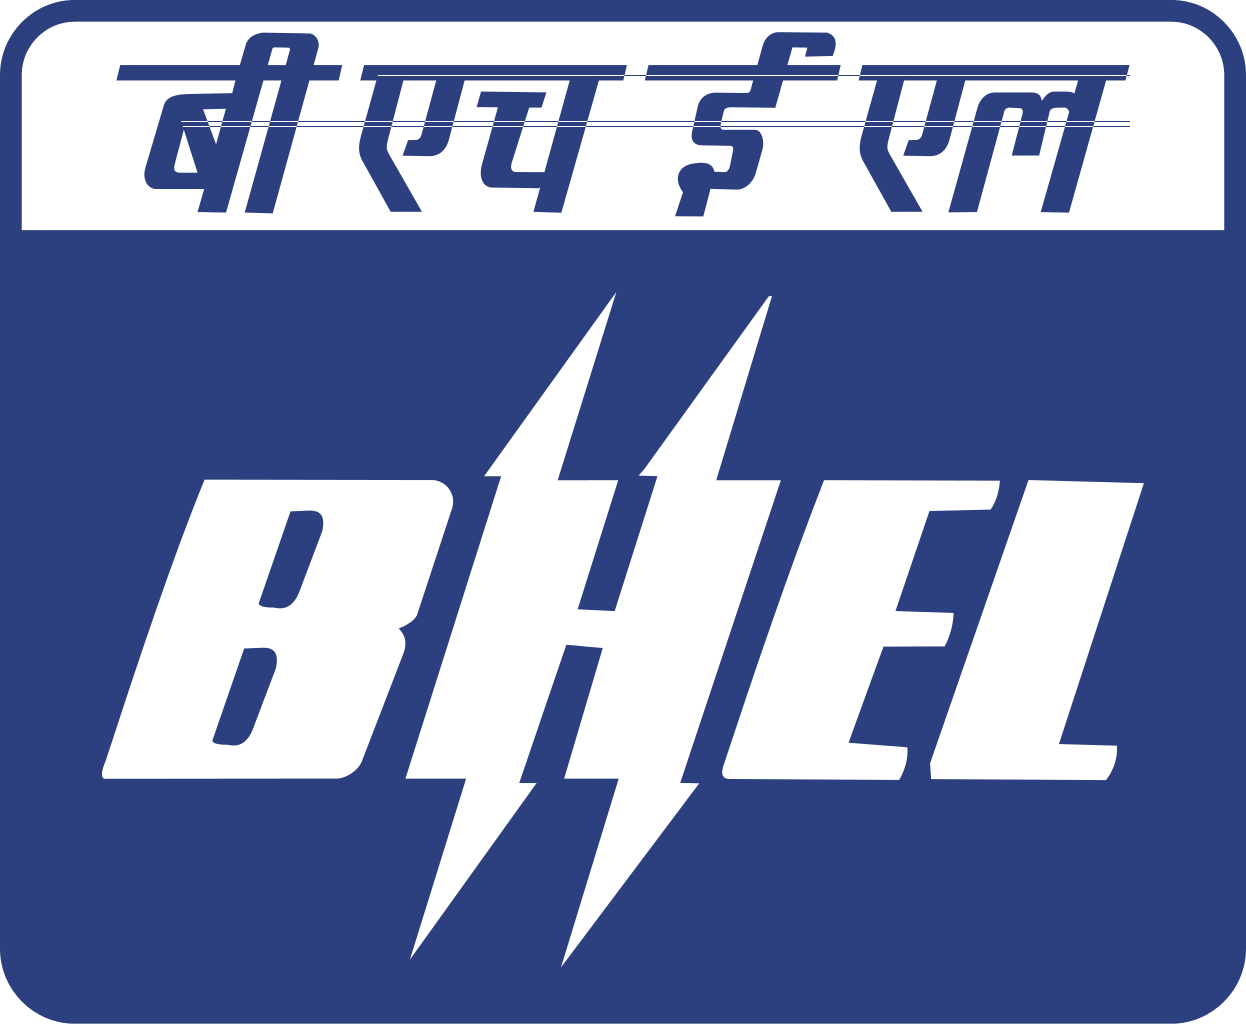 organisation studies on bhel edn Civil appeals no 8928 of 2015† with nos 1918 of 2010‡, 7187 of 2013††, 8926 of 2015†‡, 9154 of 2015‡†, 9107 of 2015‡‡, 9155 of 2015, 9157 of.